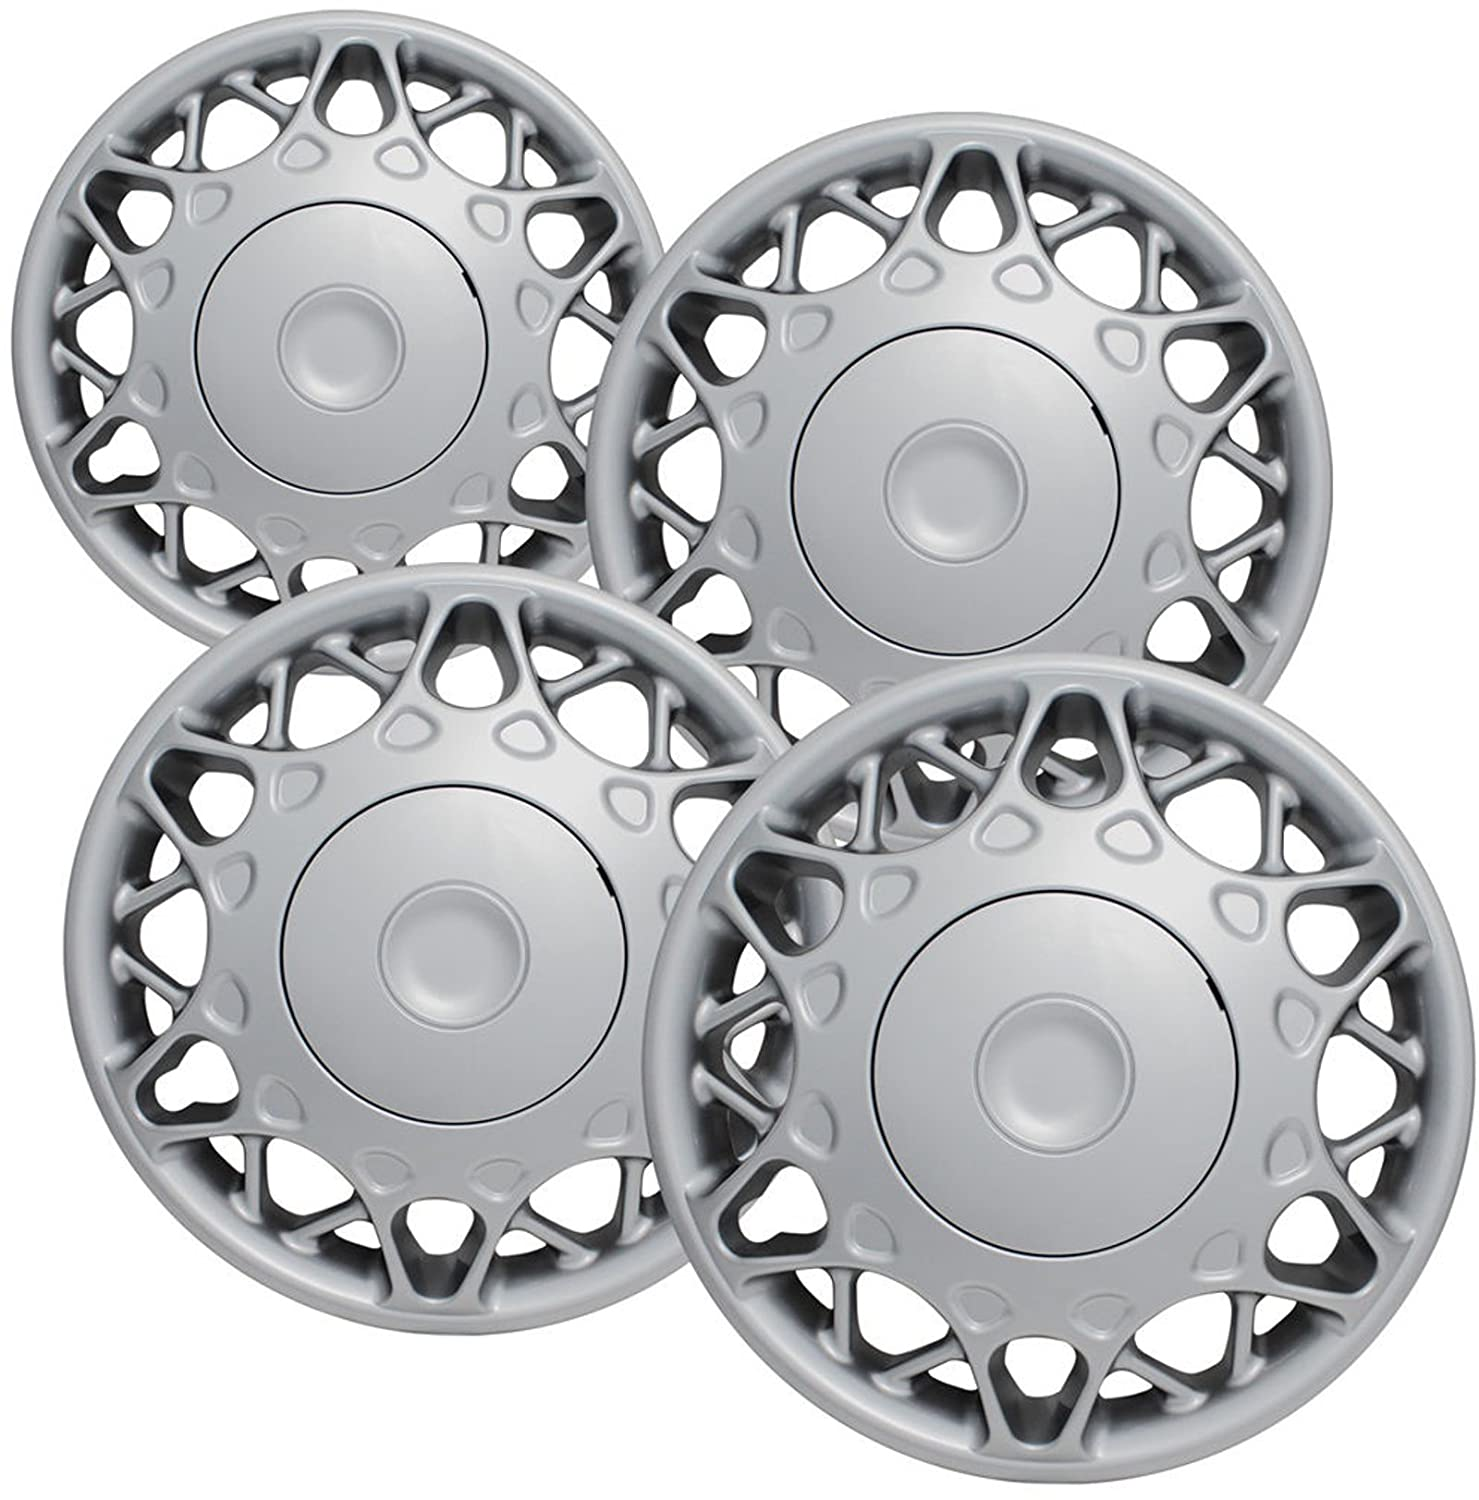 Amazon.com: CCI IWC441-15S 15 Inch Bolt On Silver Lacquer Finish Hubcaps - Pack of 4: Automotive